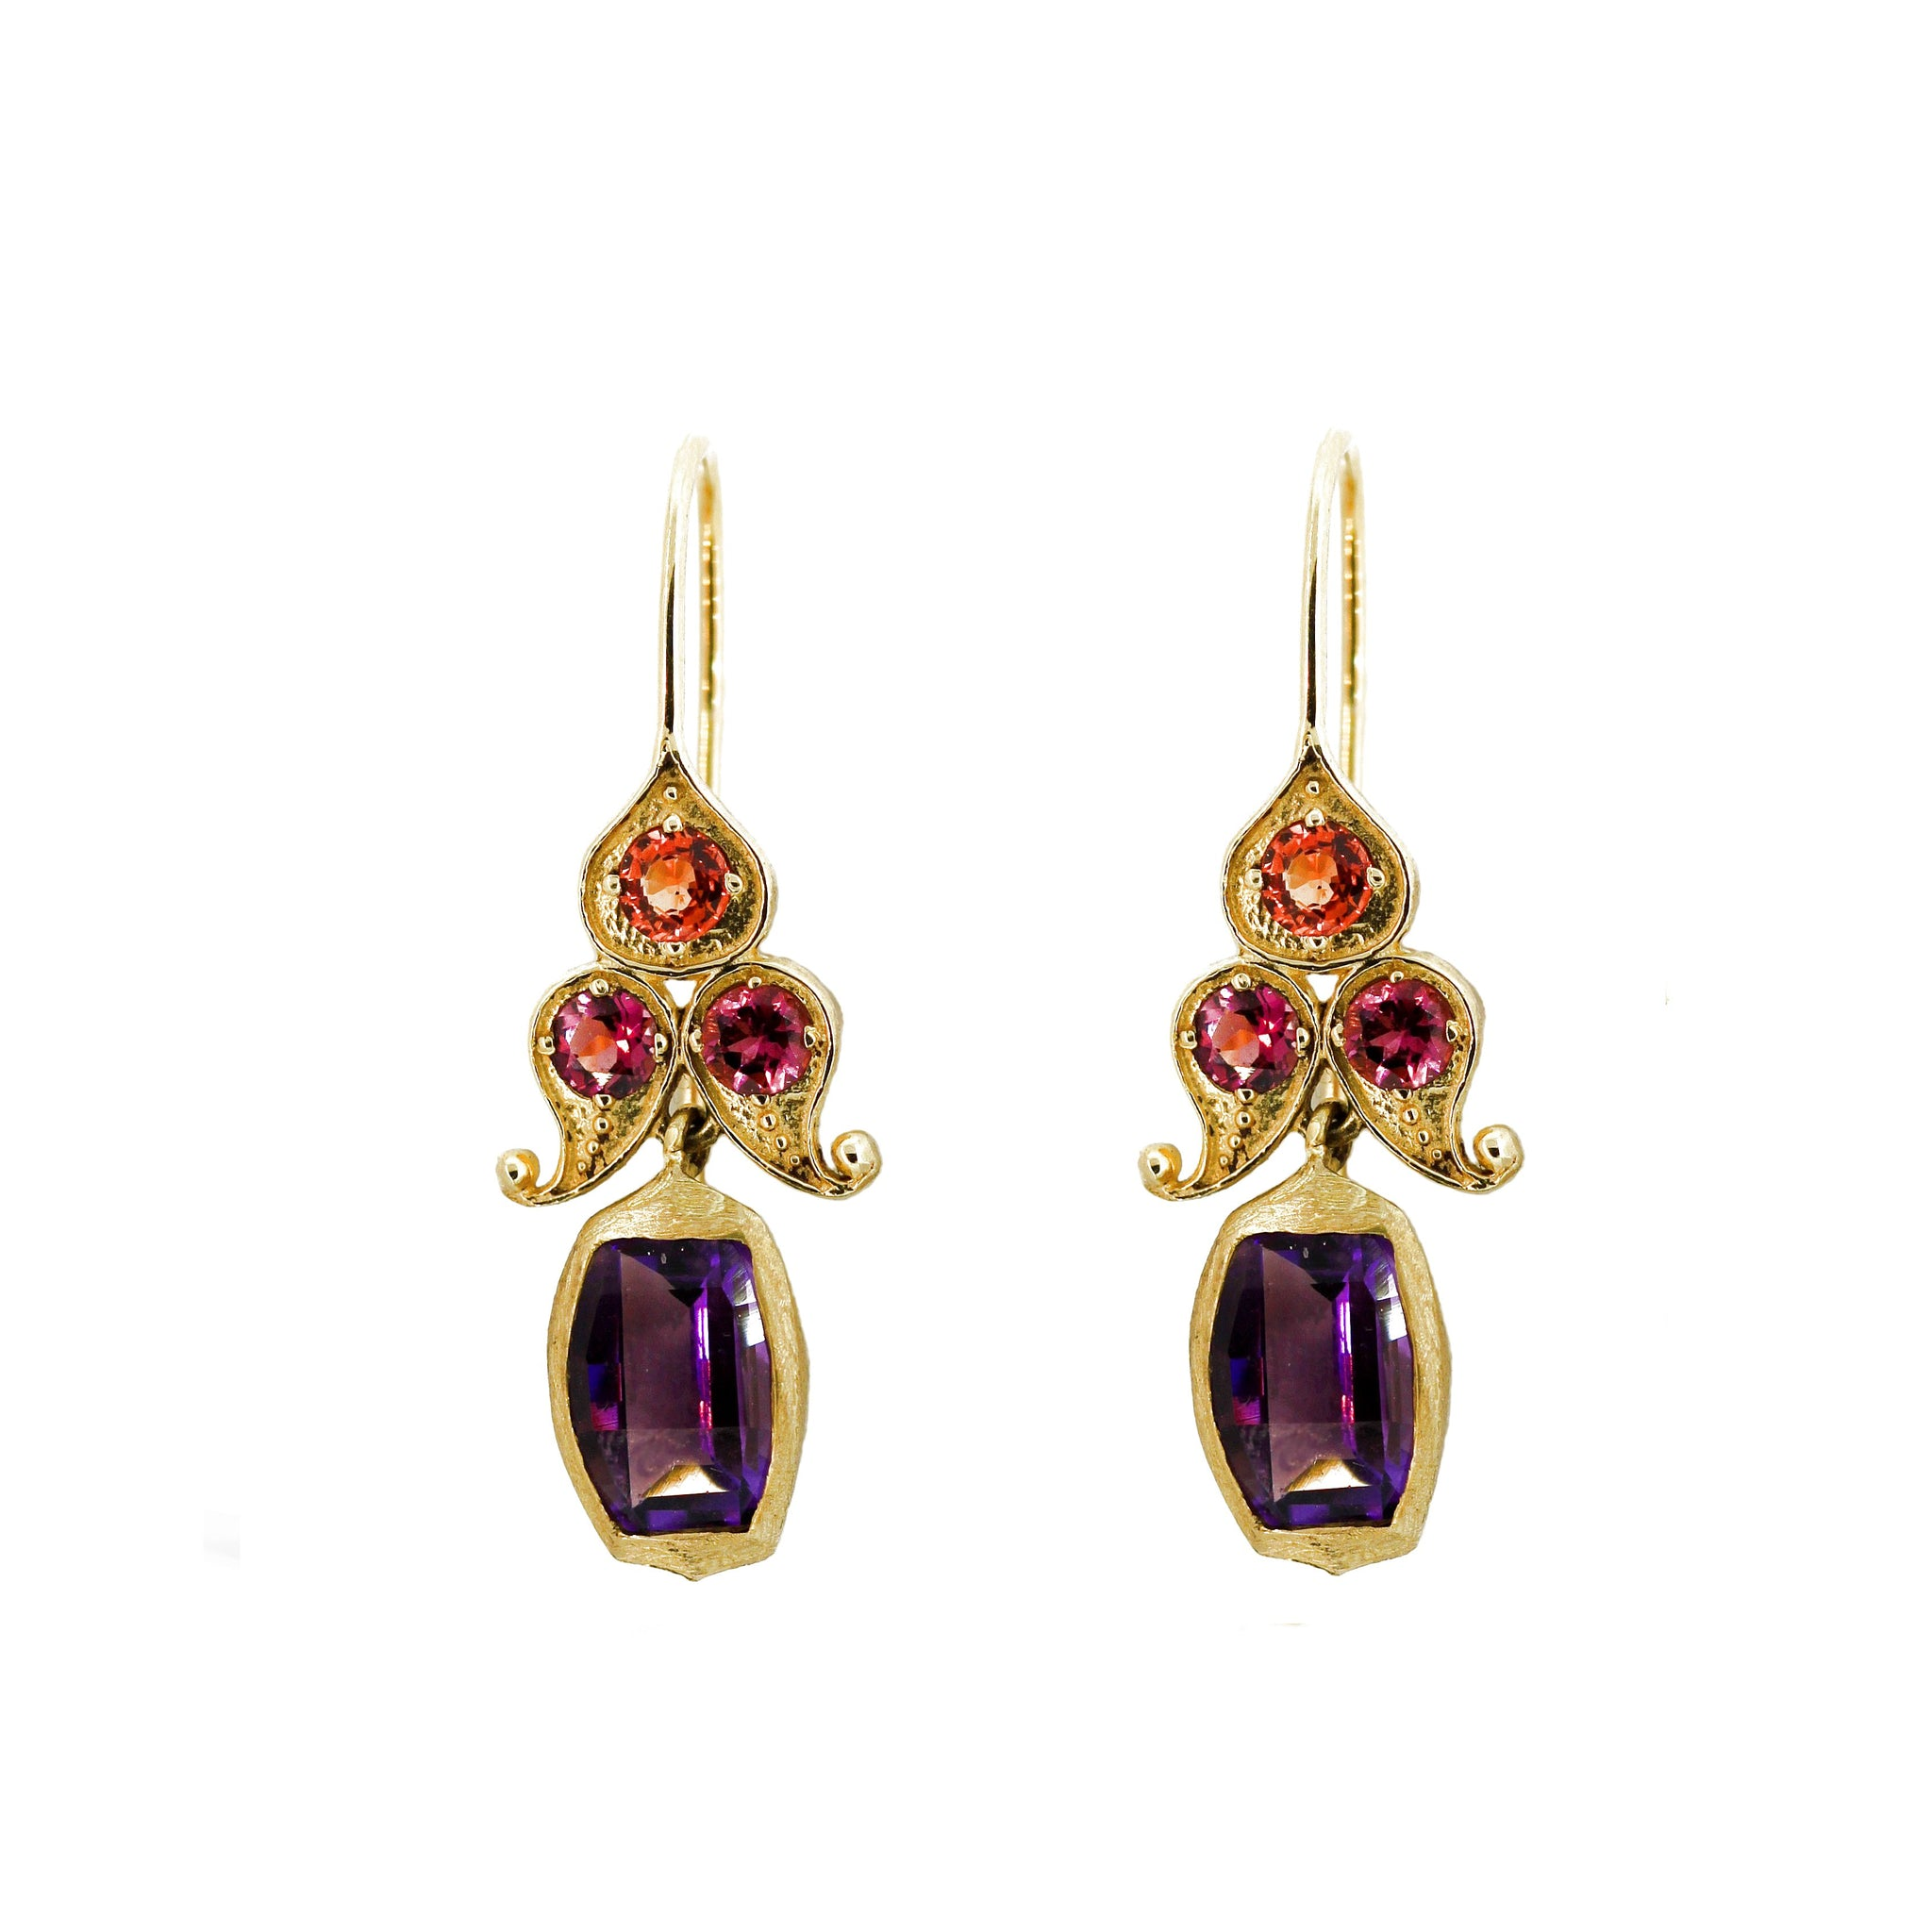 rajasthan smallrajasthanearrings enamorata drop earrings products small